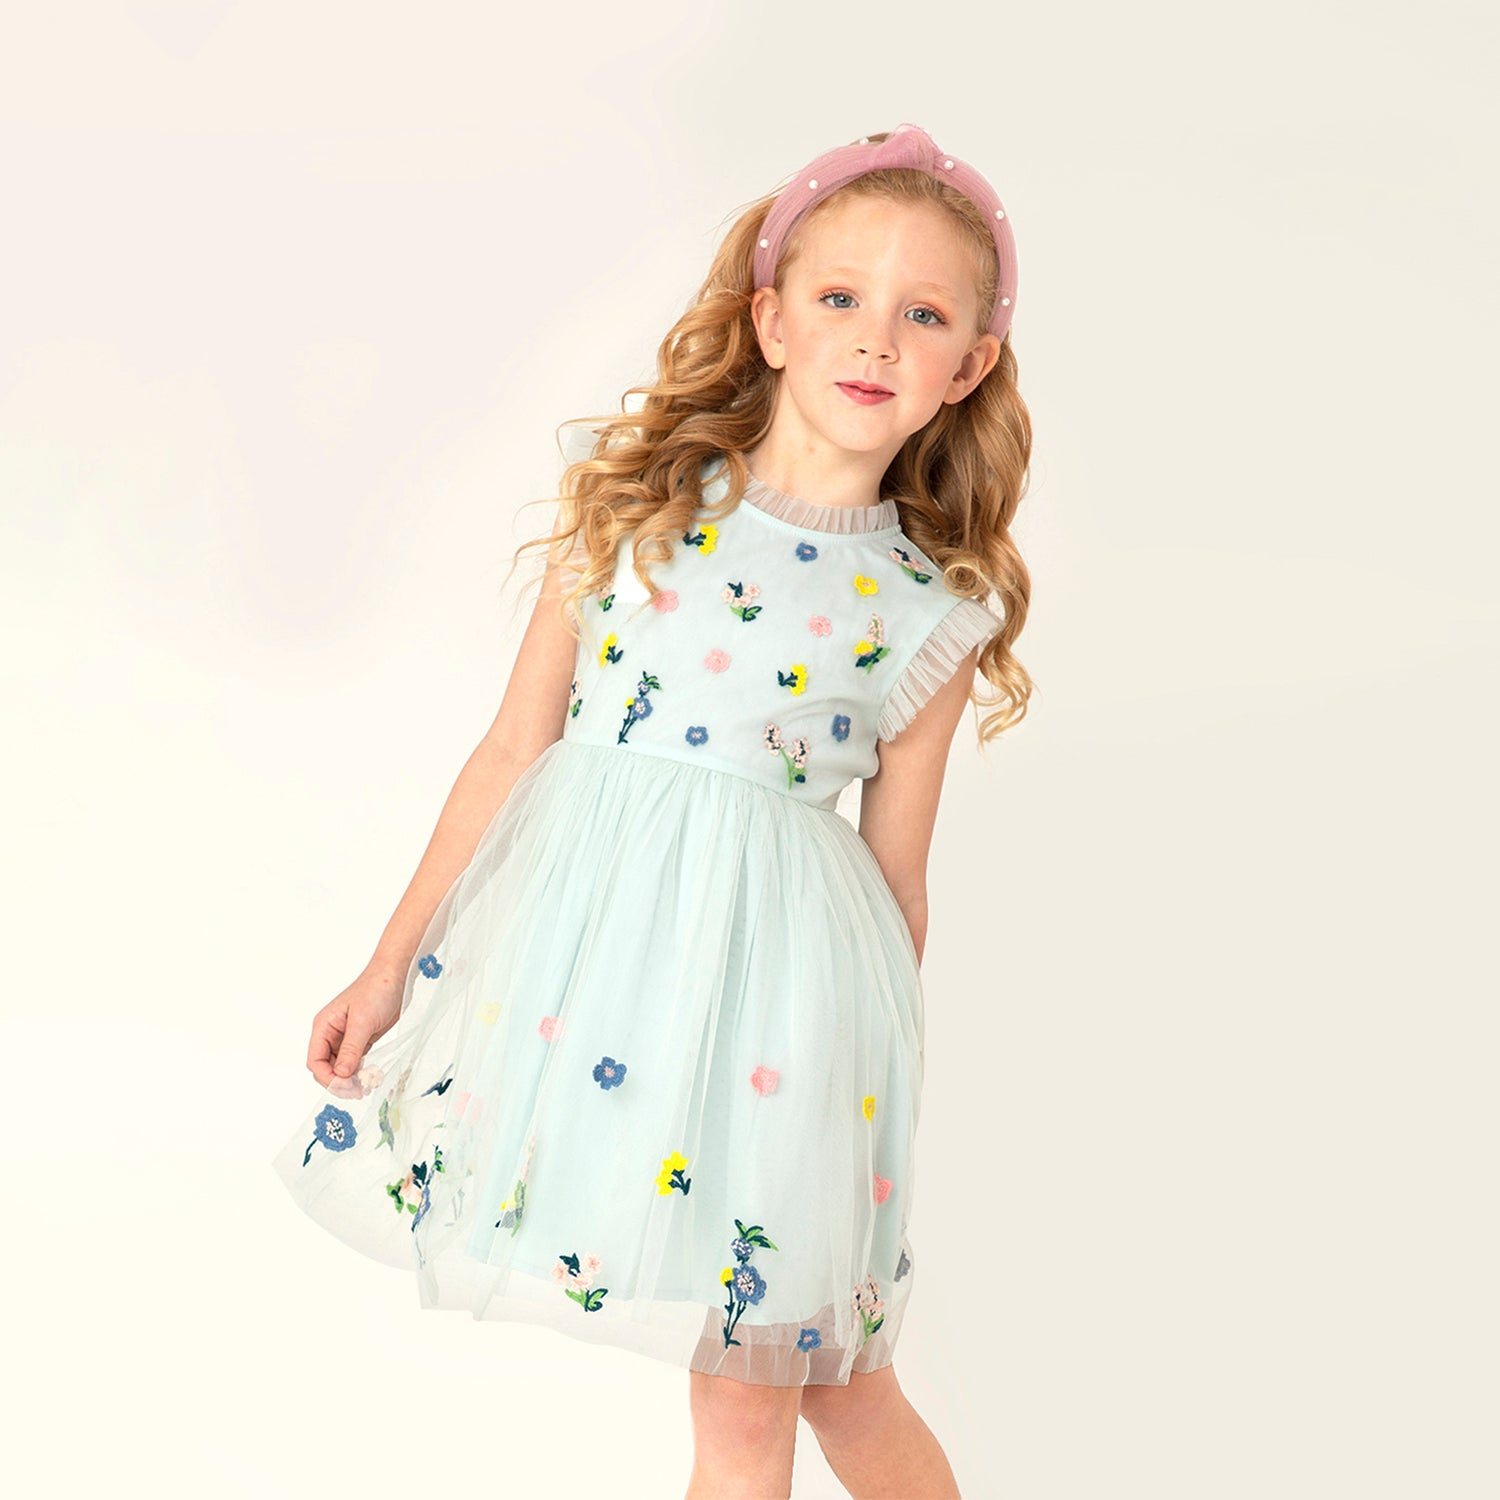 kids-tulle-frill-dress-ws-cdrs-6059sky